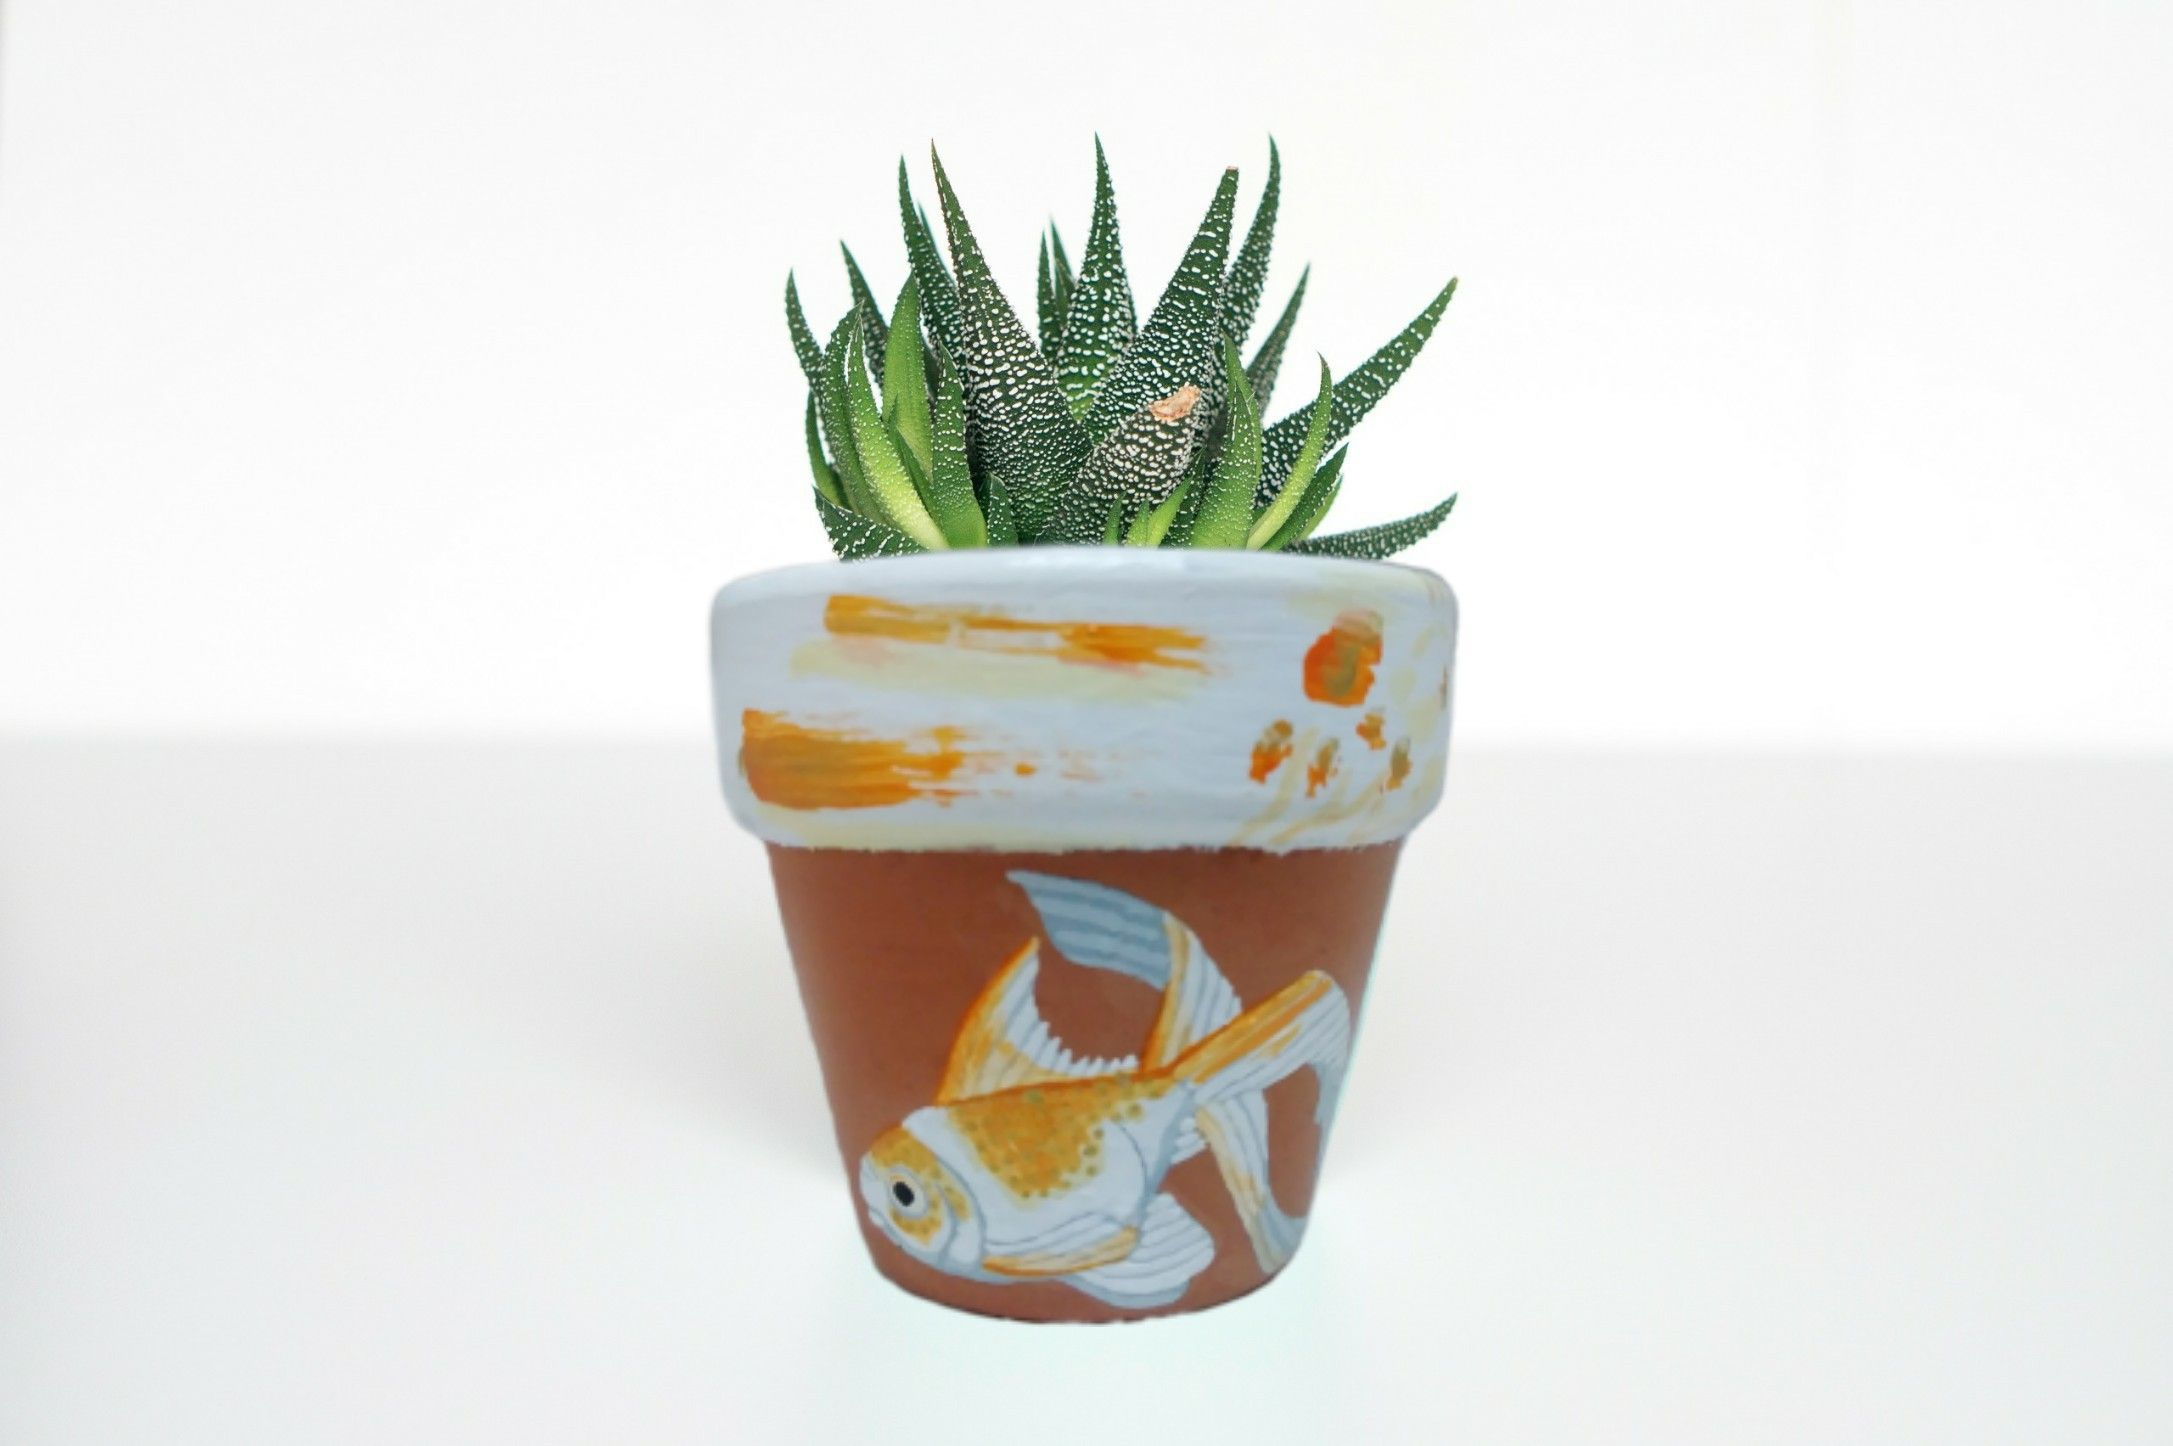 Hand Painted 2 Inch Fantail Goldfish Terra Cotta Flower Pot Fantail Goldfish Flower Pot Decorative Flower Pot Painted Flower Pots Fantail Goldfish Flower Pots